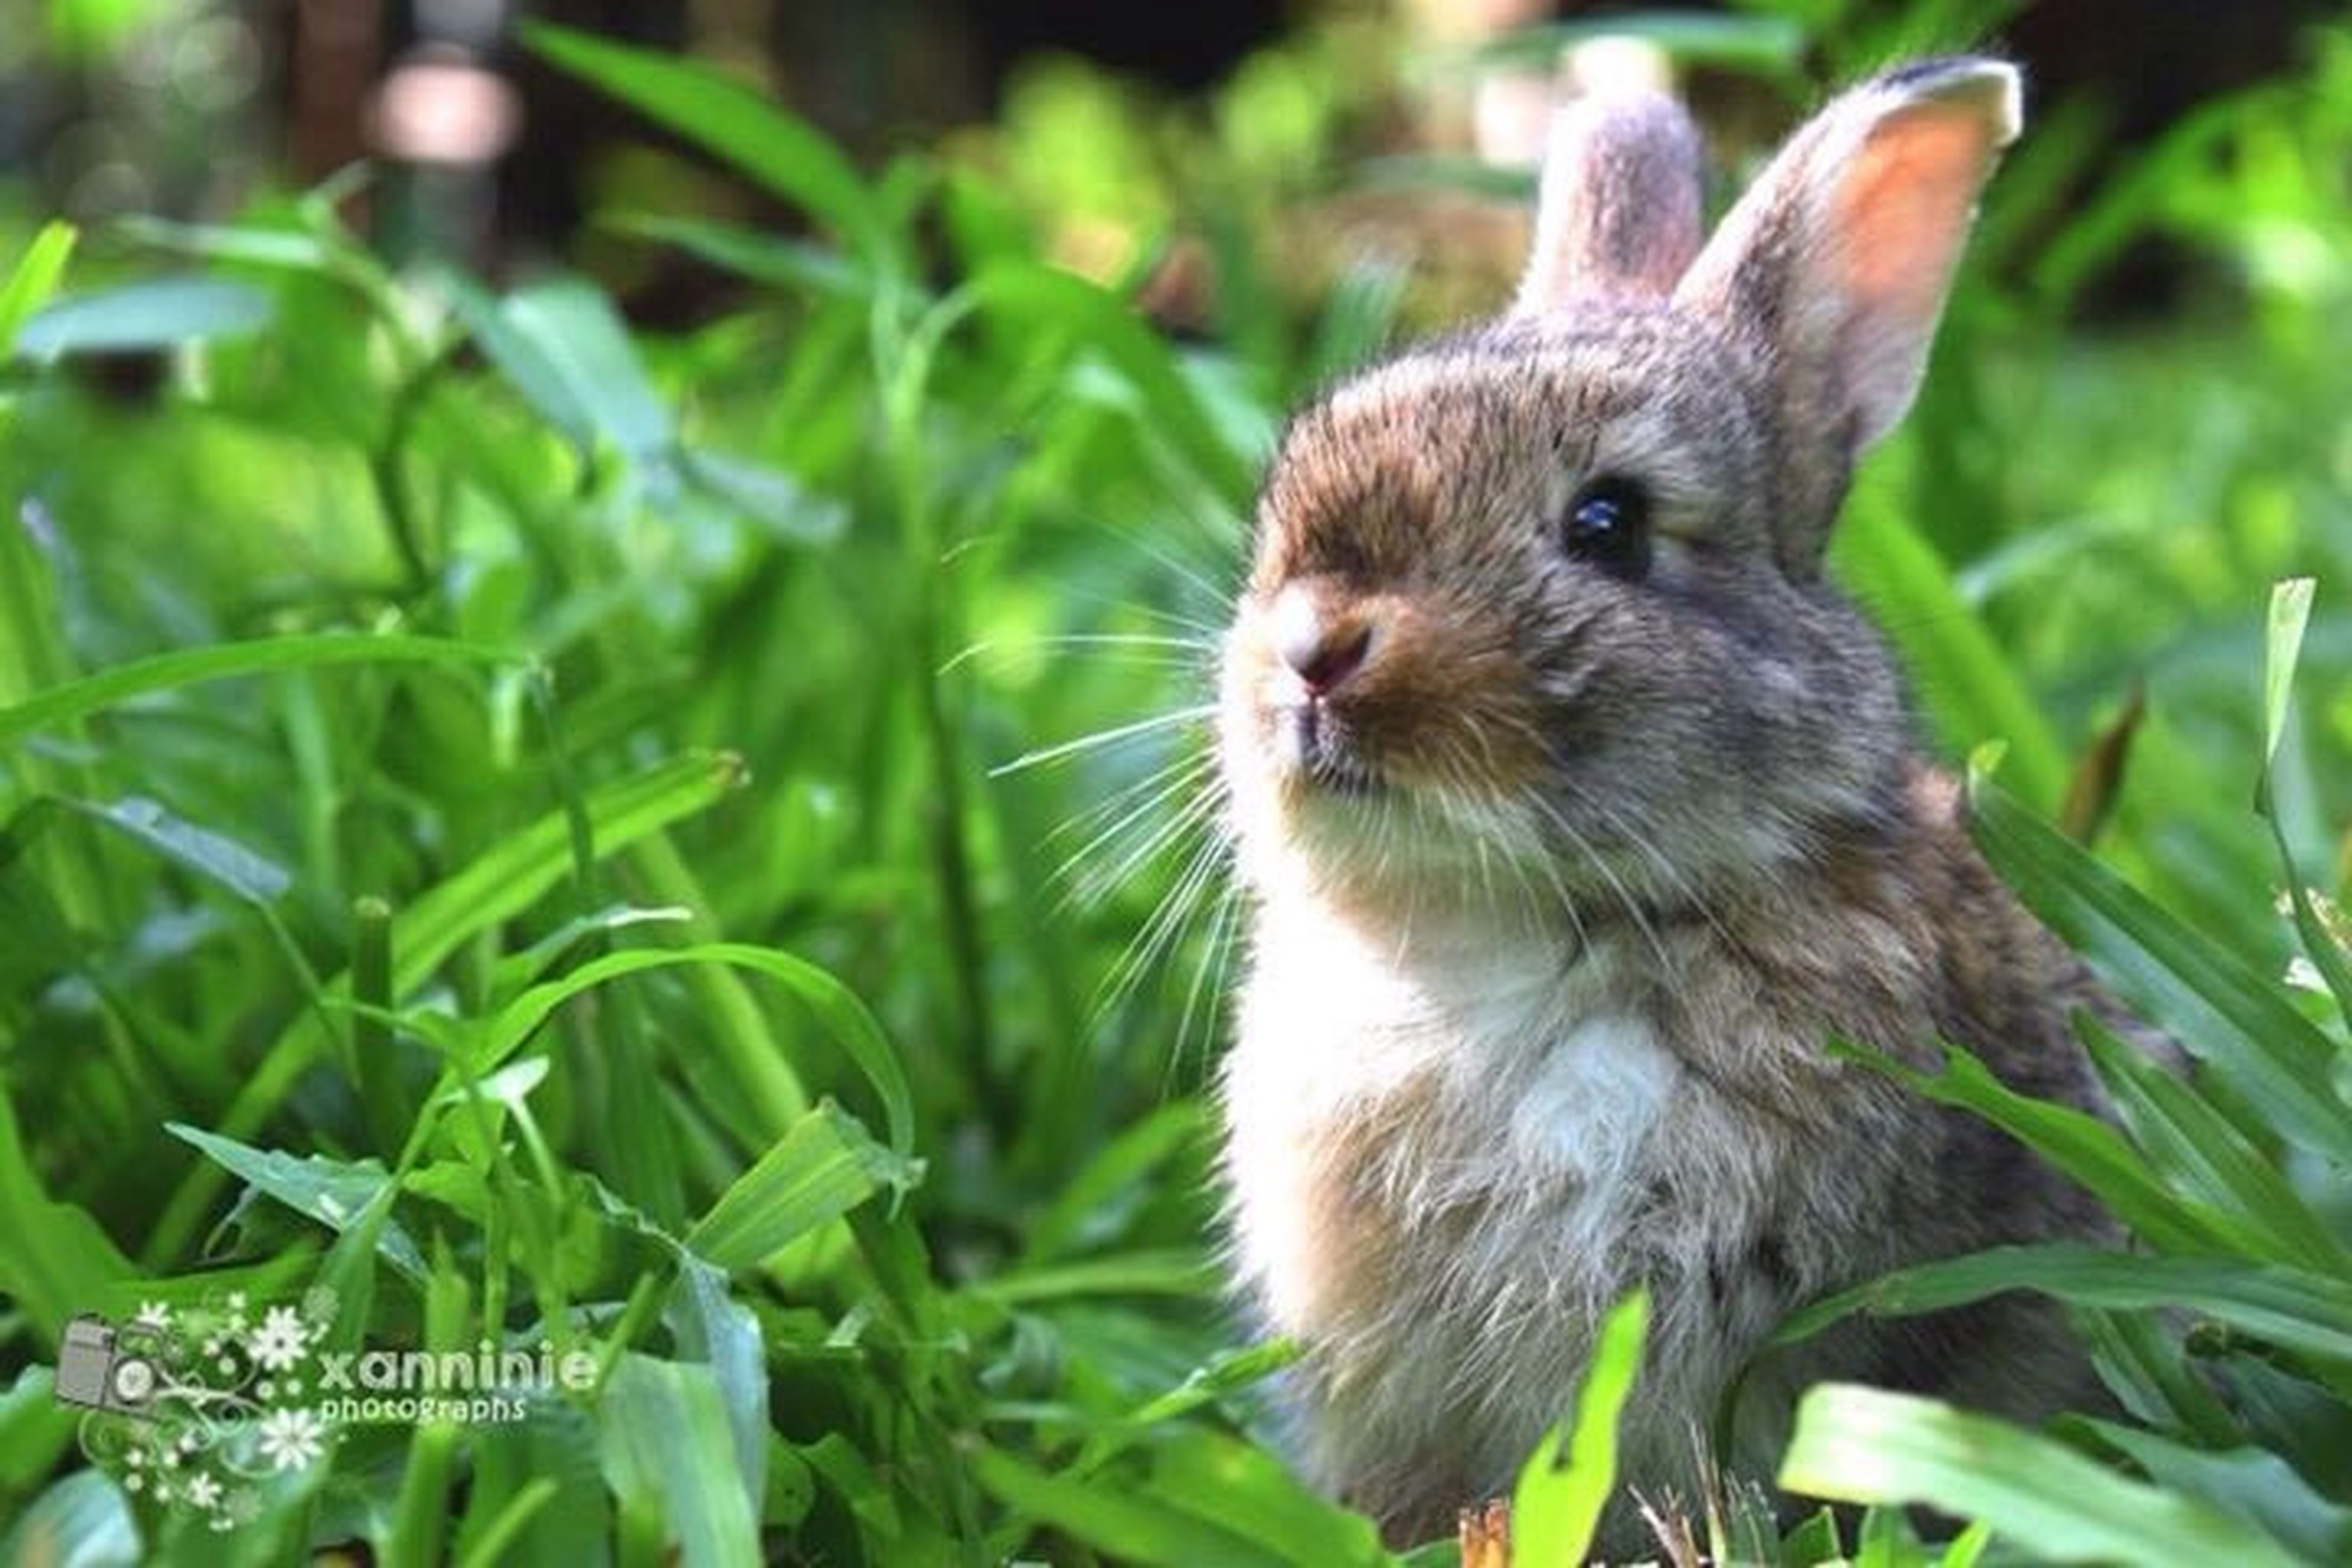 animal themes, one animal, animals in the wild, wildlife, focus on foreground, close-up, nature, green color, plant, looking away, leaf, day, mammal, bird, squirrel, grass, outdoors, growth, side view, selective focus